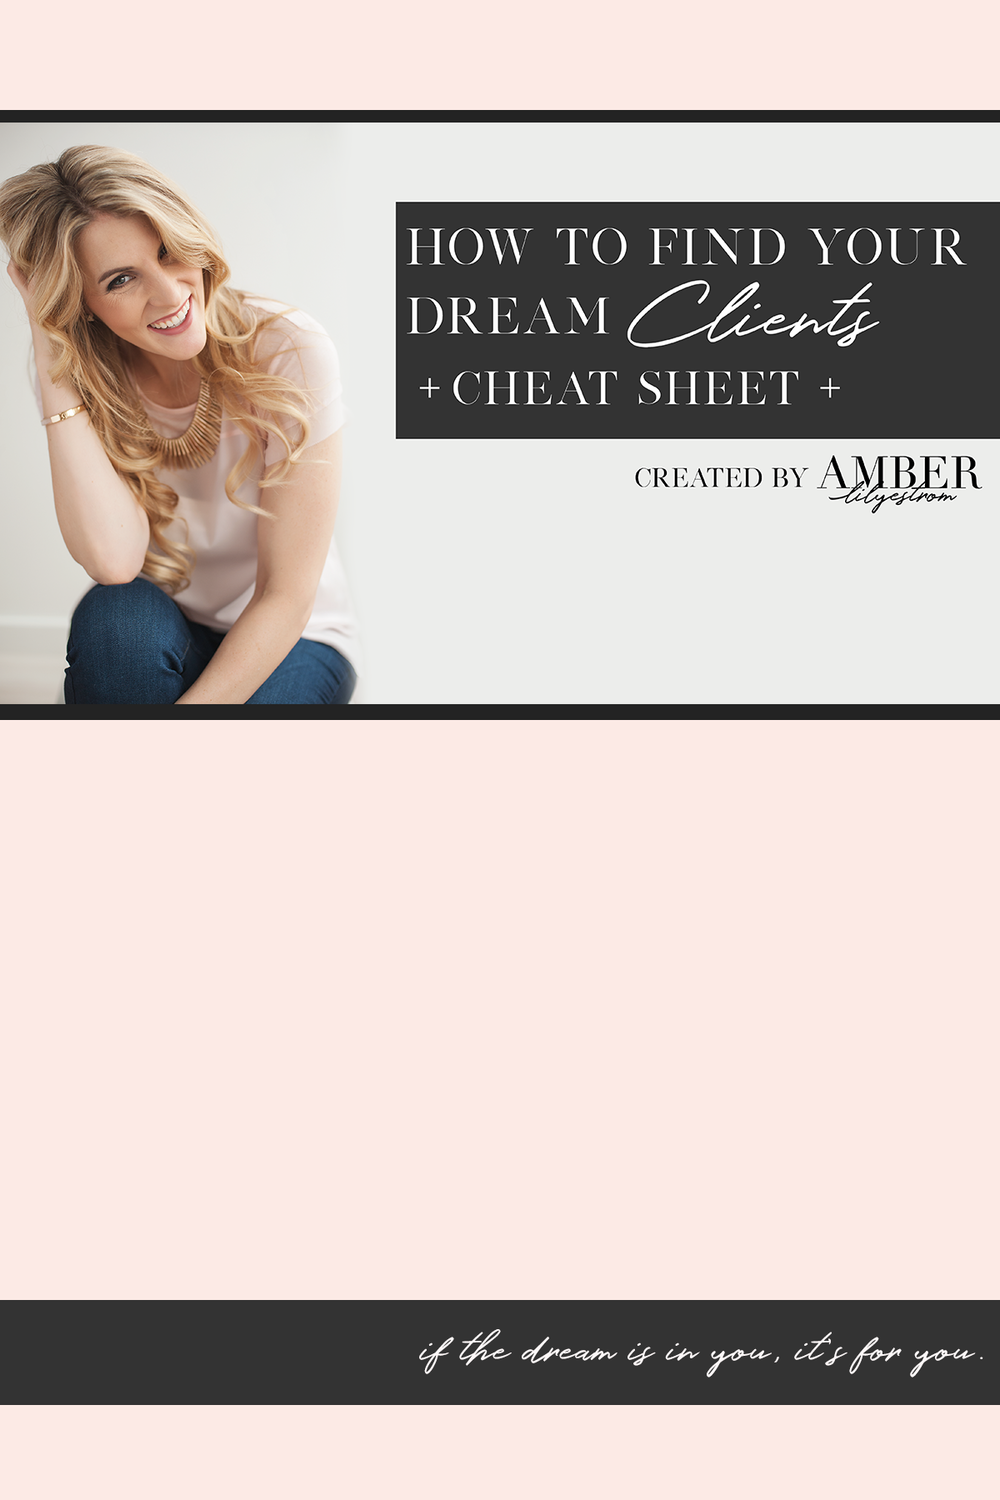 dream-client-cheat-sheet-amber-lilyestrom.png